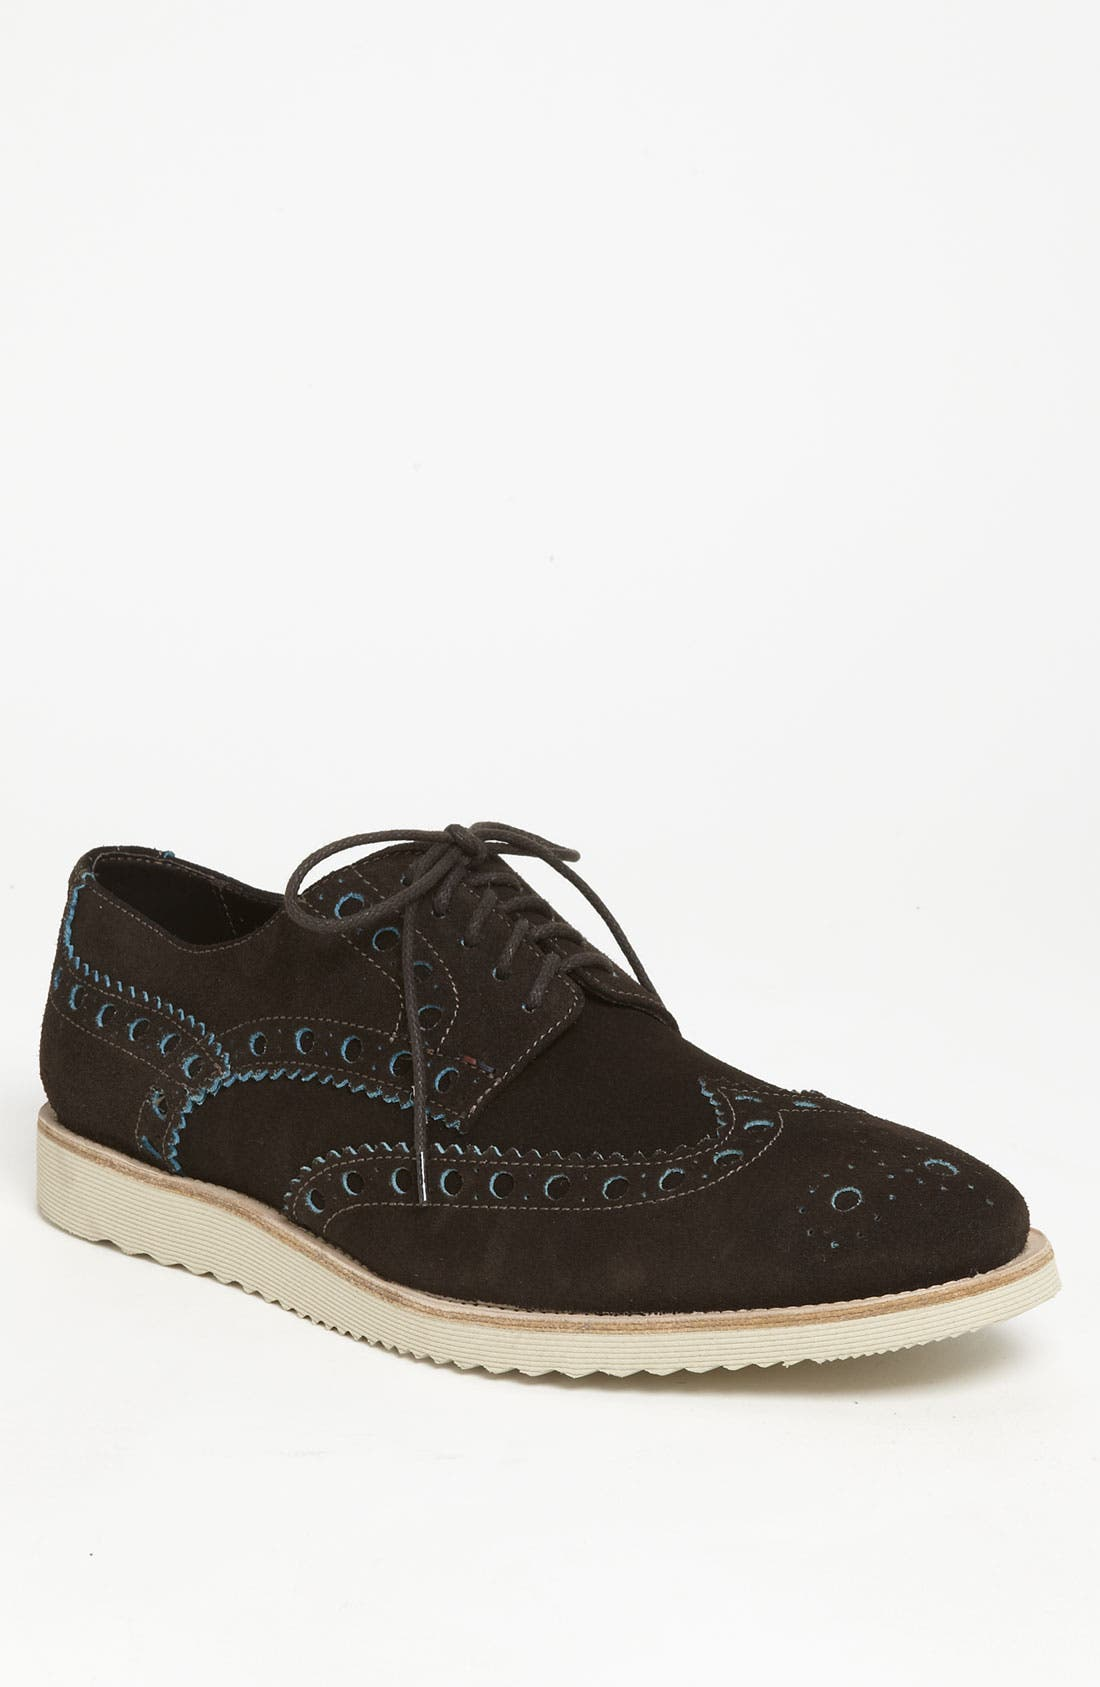 Main Image - Paul Smith 'Hump' Wingtip